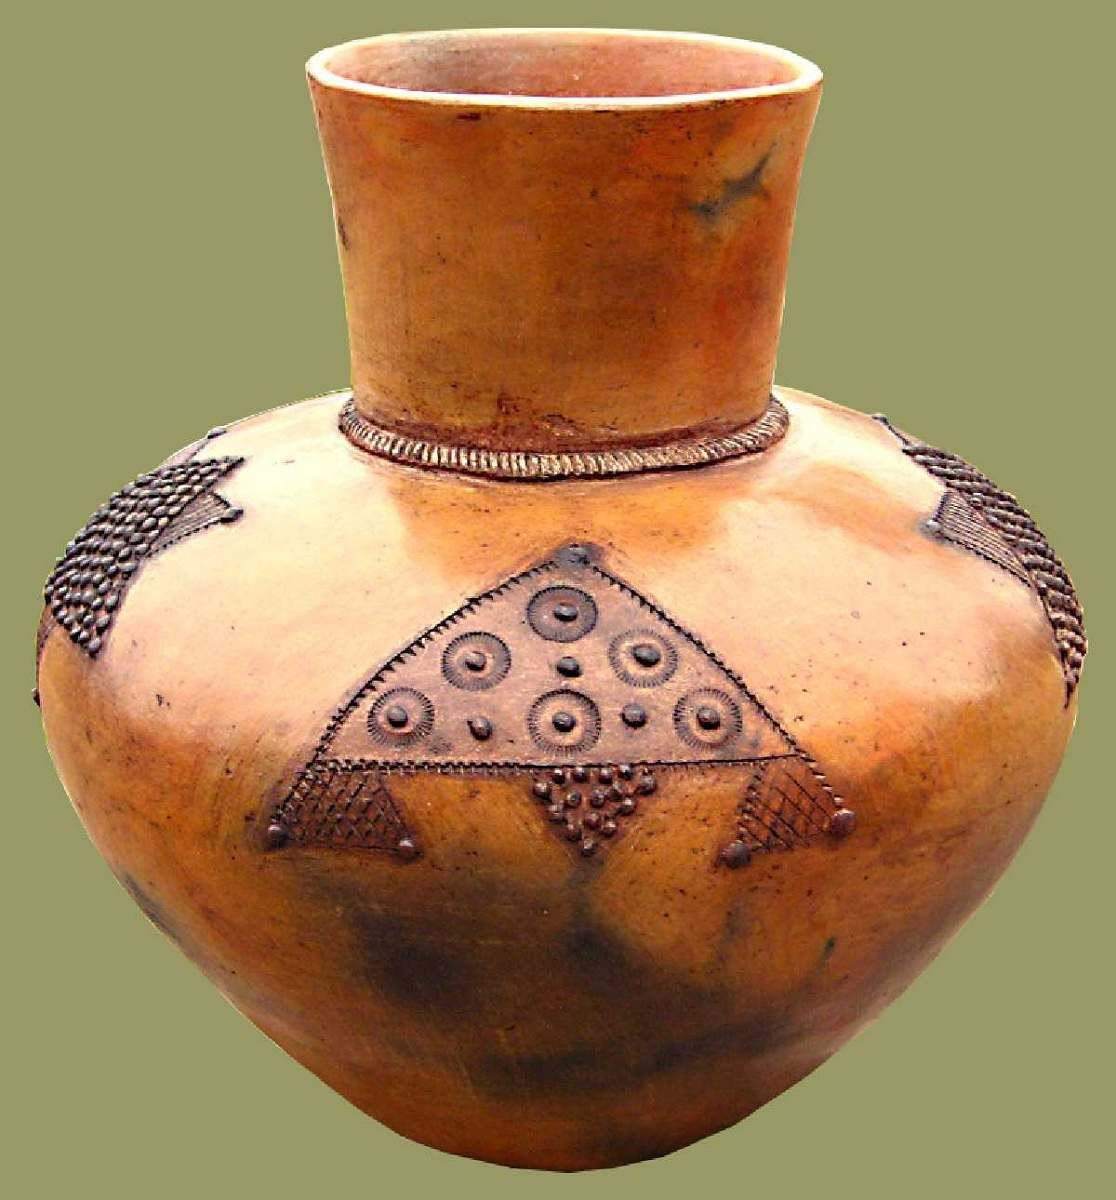 Small clay pots for crafts - Clay Pot Ukhamba In Zulu Used For Storing Beer A Small